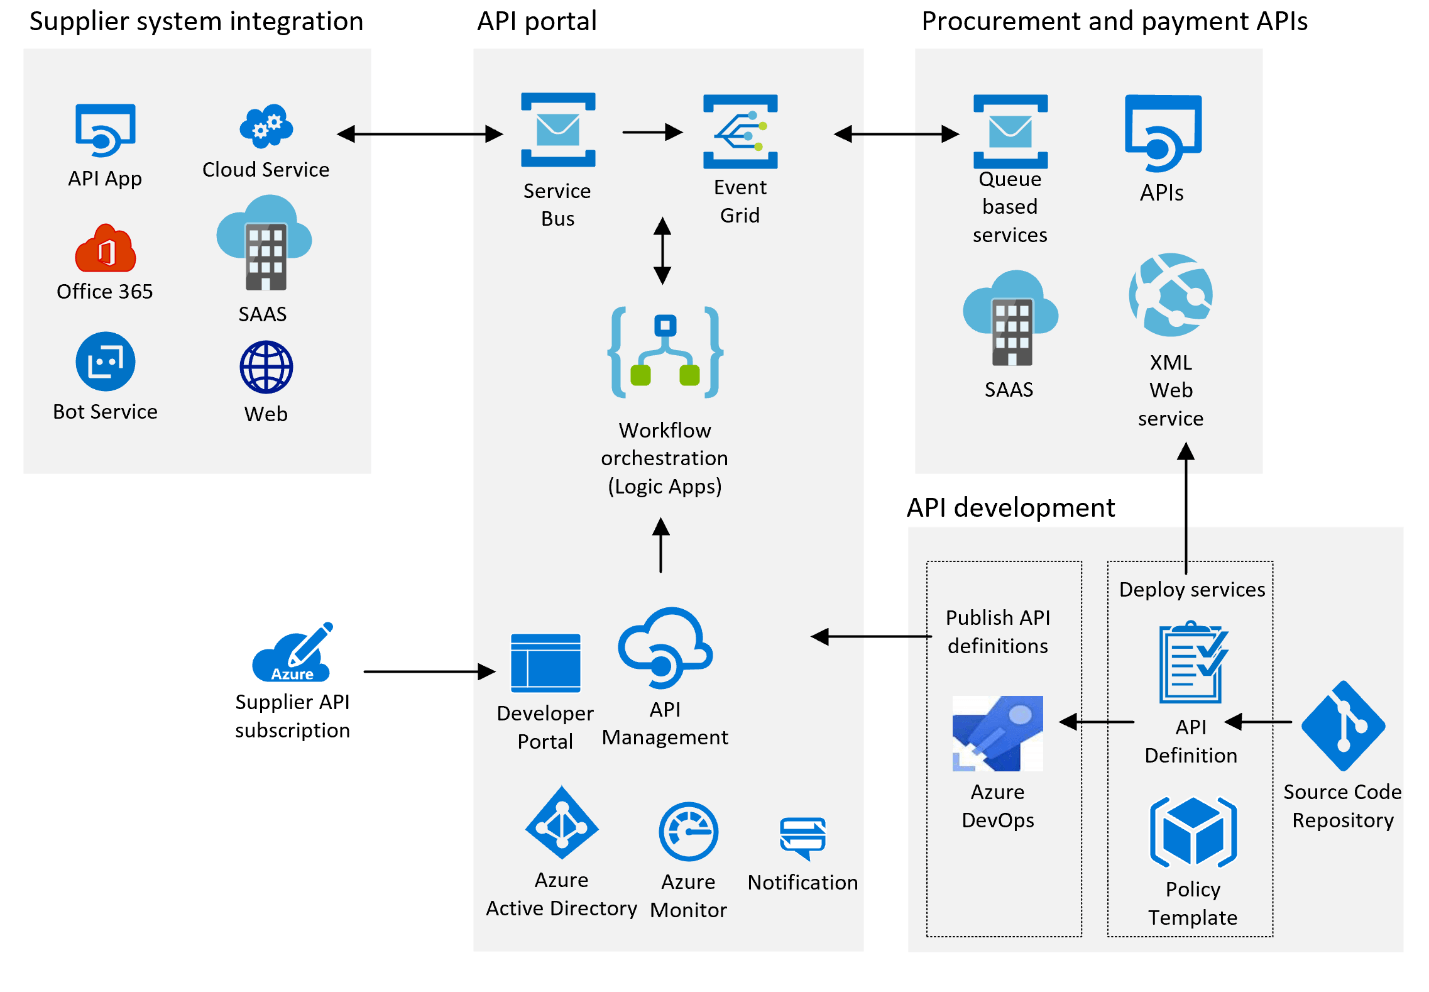 Fig 1 shows the architecture of the procurement and payment API environment that consists of four groupings. Top left, a variety of supplier systems integrate to the API portal in center. The API portal in center contains security and API management systems. The procurement and payments systems are in top right, showing APIs used to interact with supplier systems. Bottom right shows the API development systems and processes for publishing new APIs.